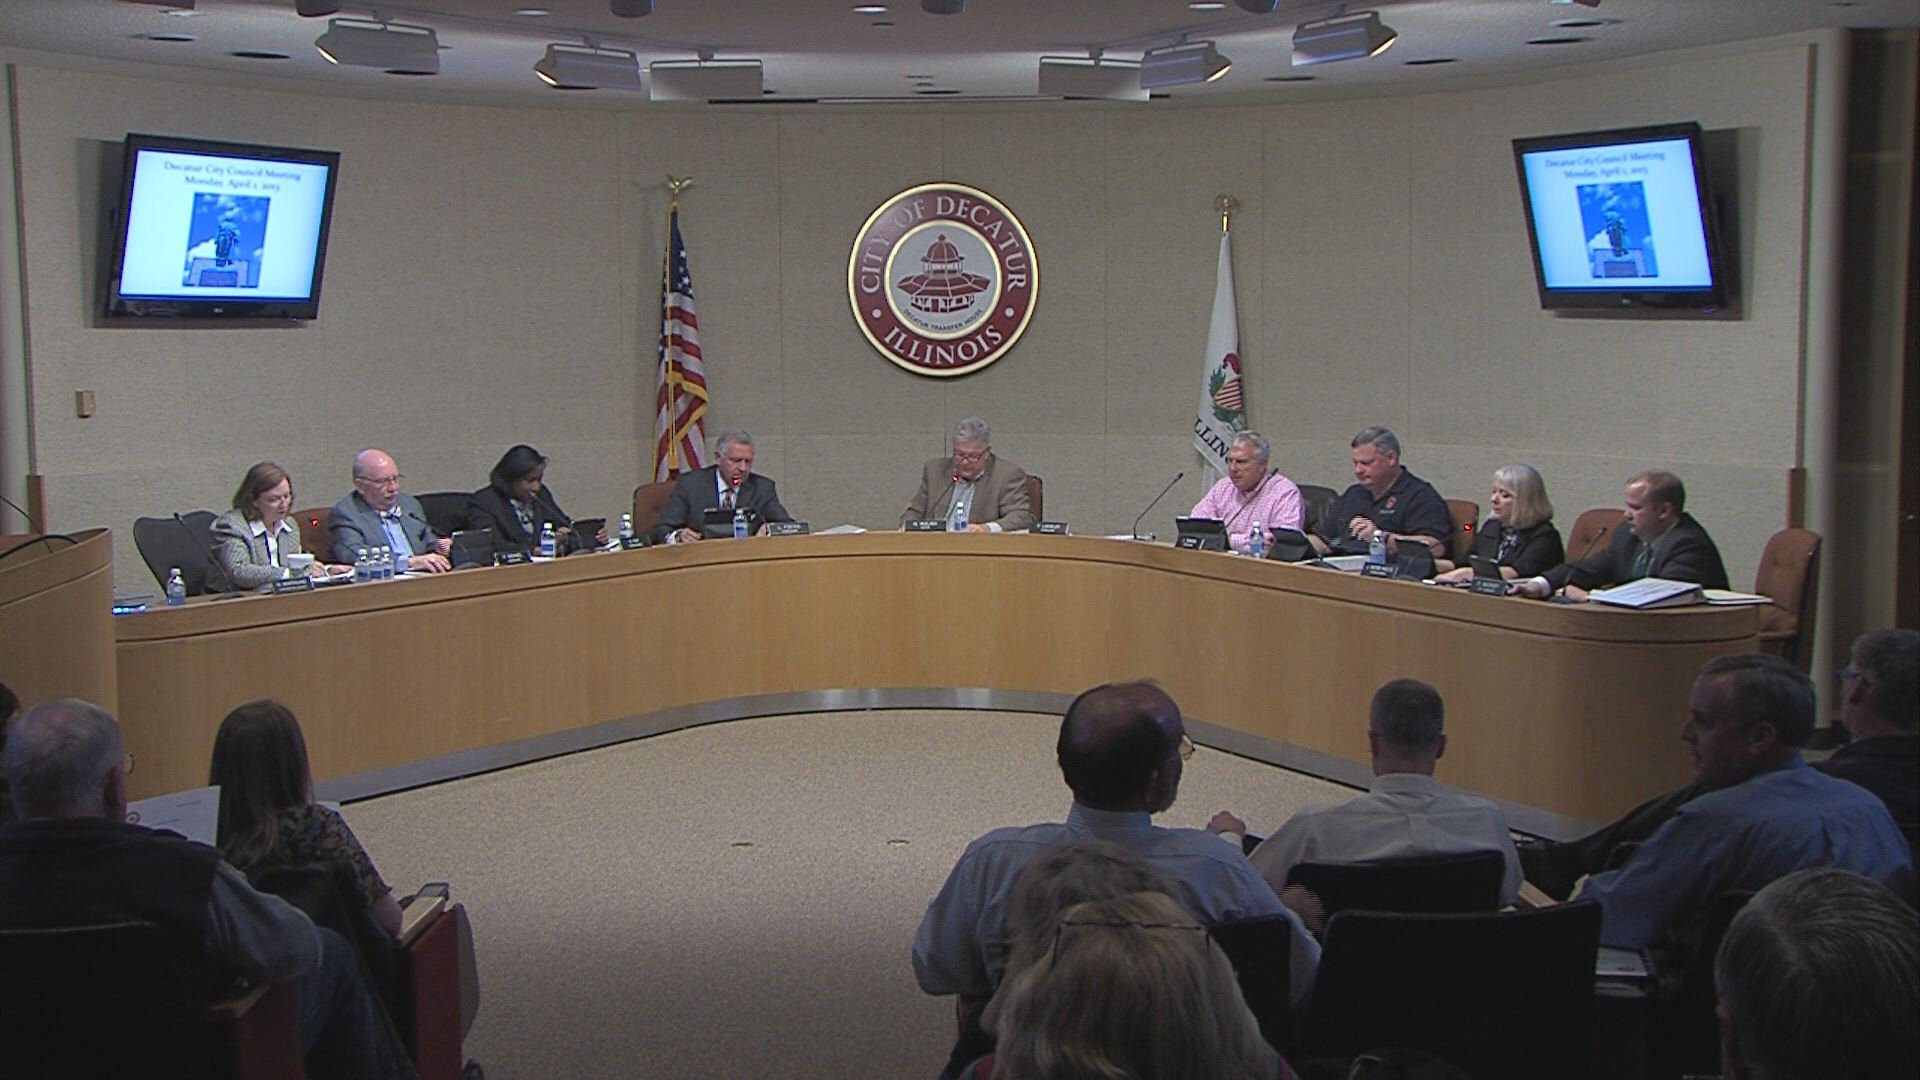 Wand Tv Jobs Decatur City Council Passes Water Rate Hike - Wandtv.com